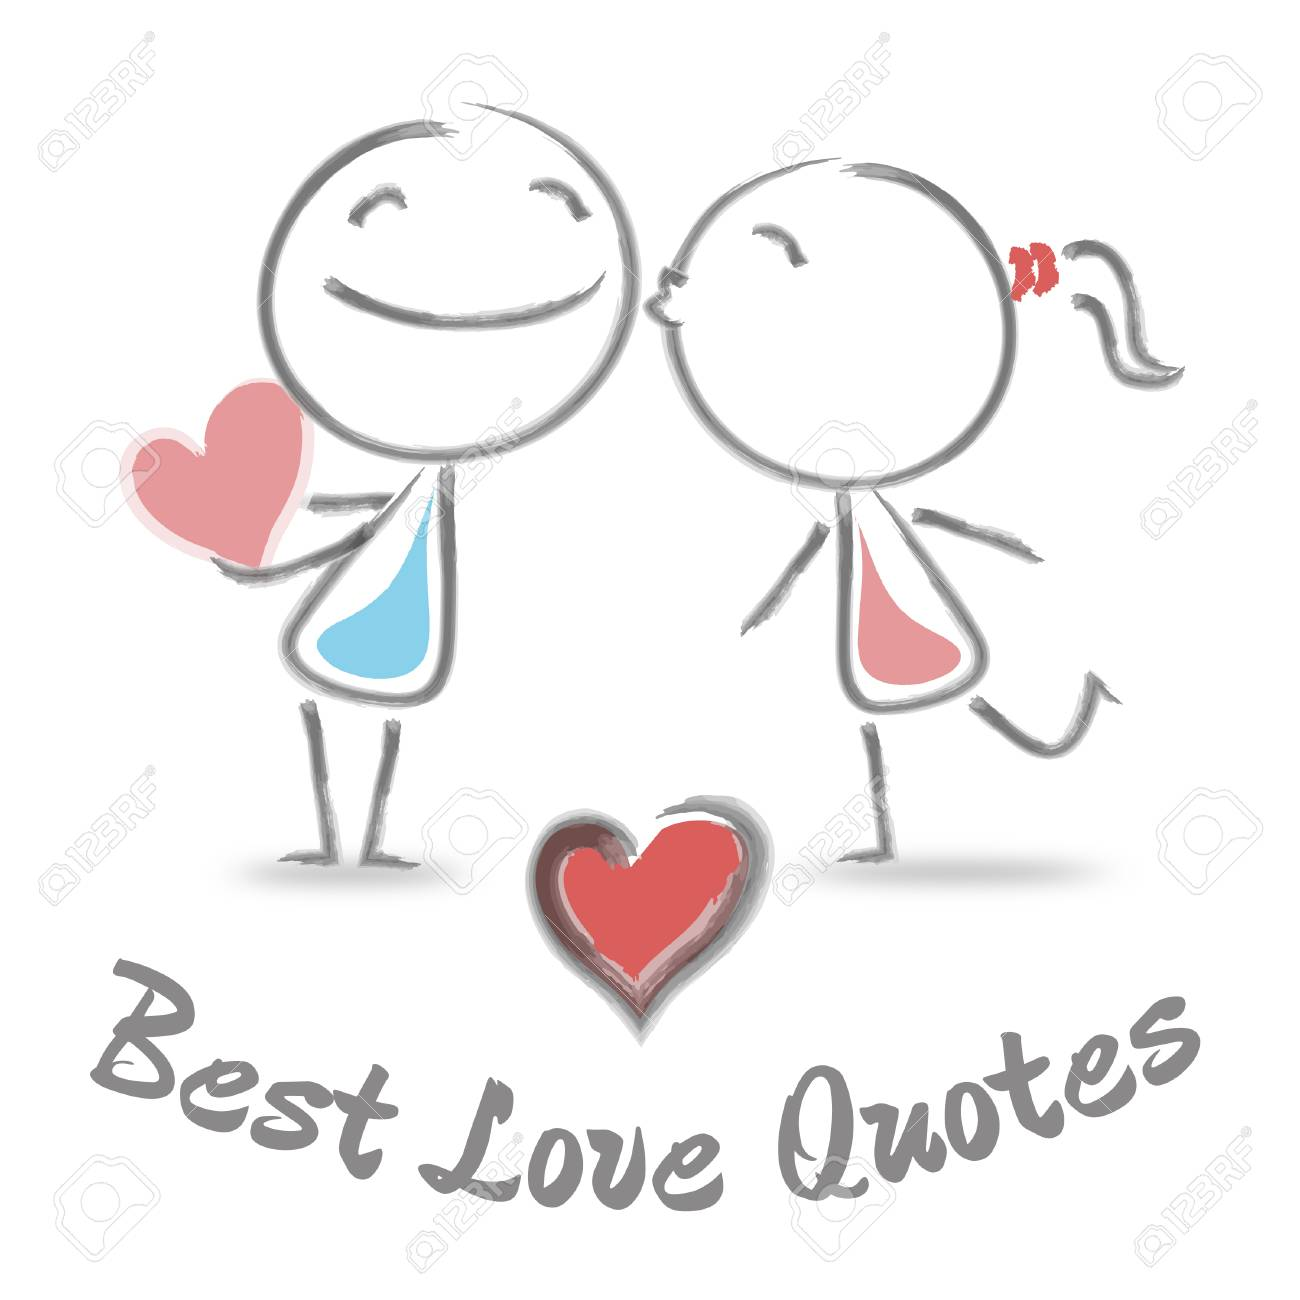 Image of: Life Best Love Quotes Indicating Good Inspirational And Extracts Stock Photo 61642777 123rfcom Best Love Quotes Indicating Good Inspirational And Extracts Stock